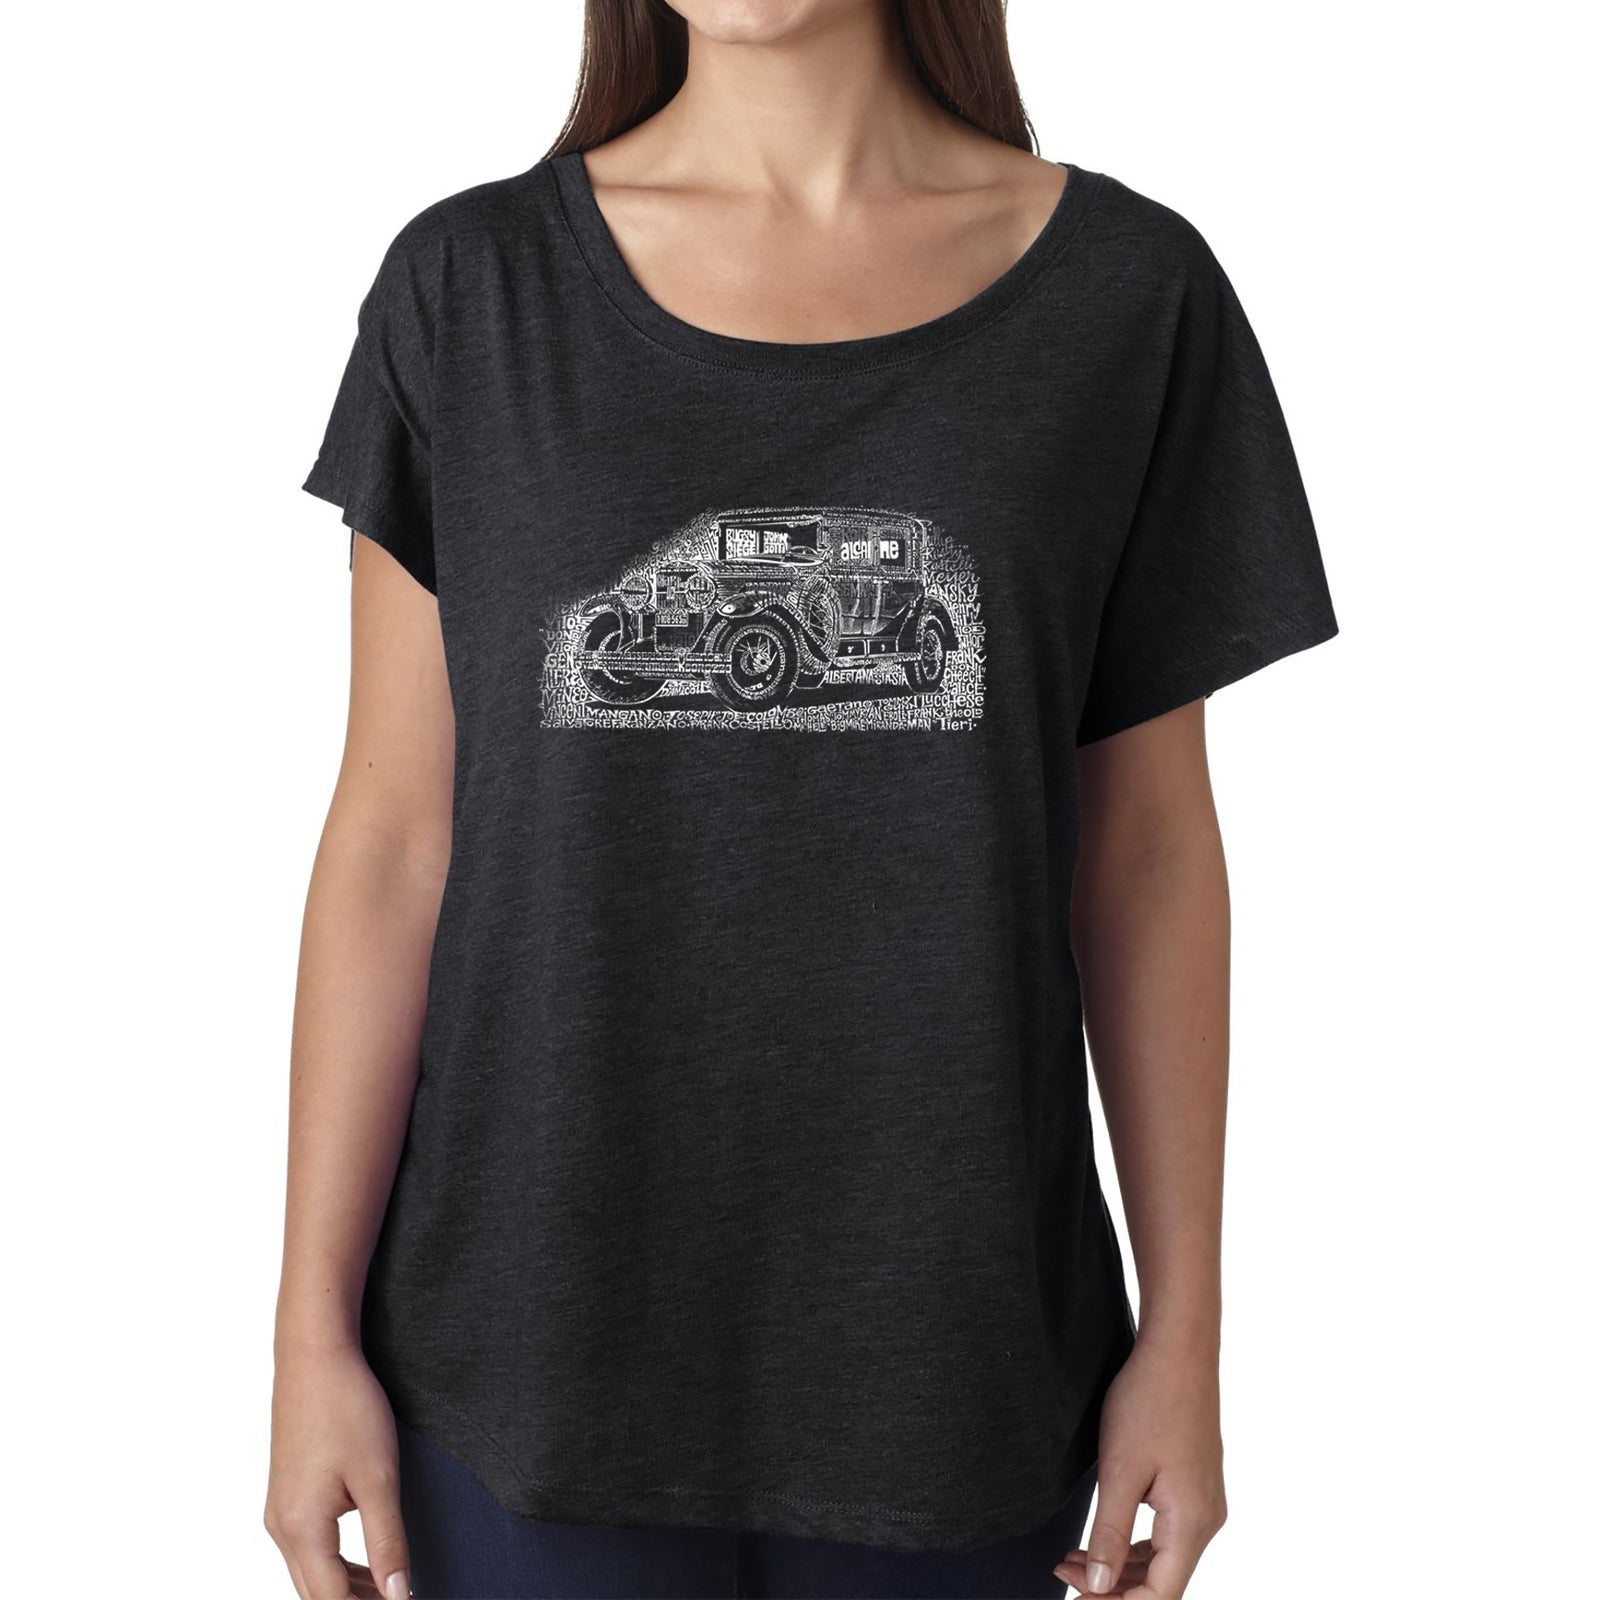 Women's Loose Fit Dolman Cut Word Art Shirt - Legendary Mobsters